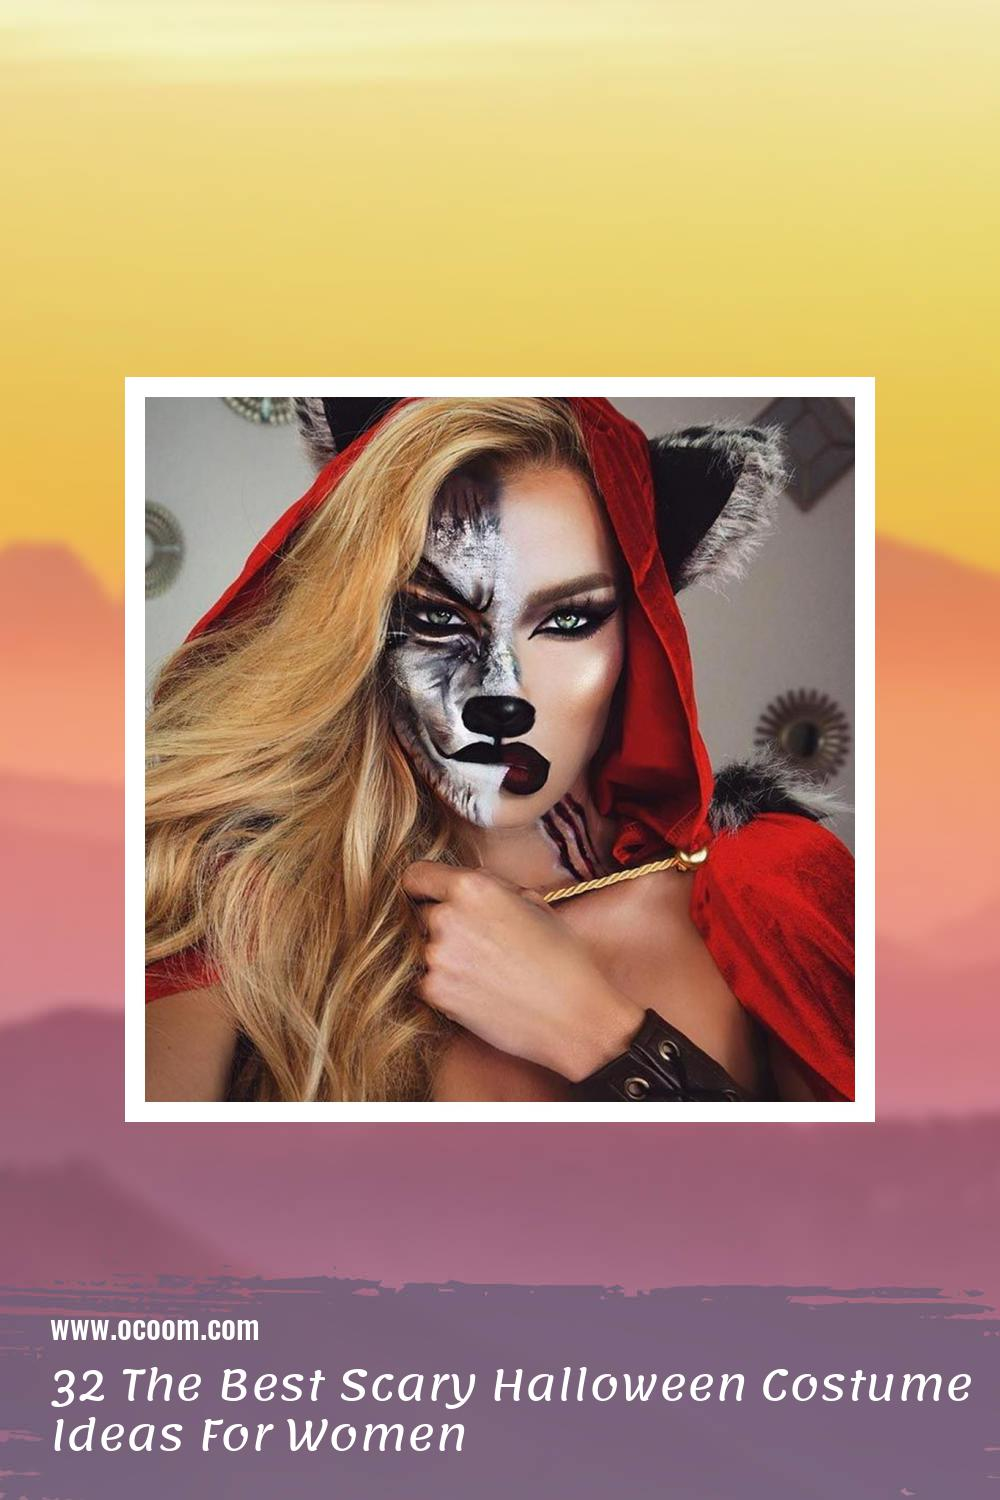 32 The Best Scary Halloween Costume Ideas For Women 41